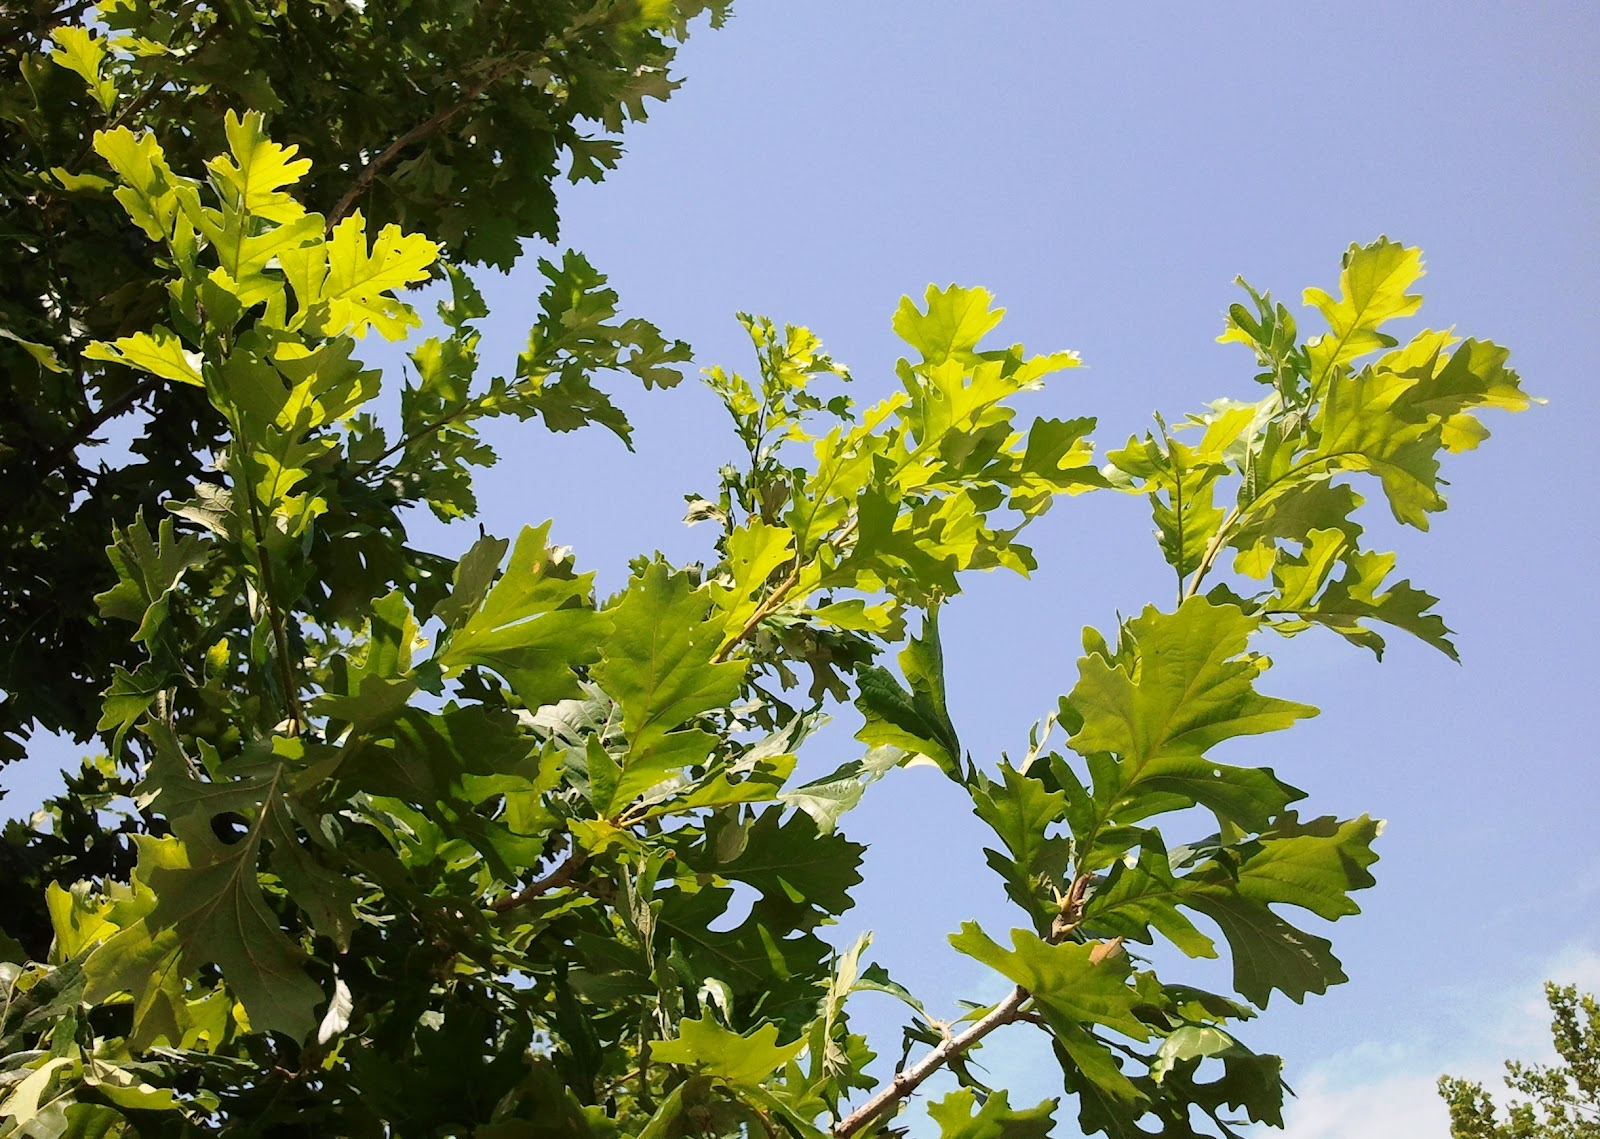 Powell Gardens' Blog: What's Up With the Oaks?